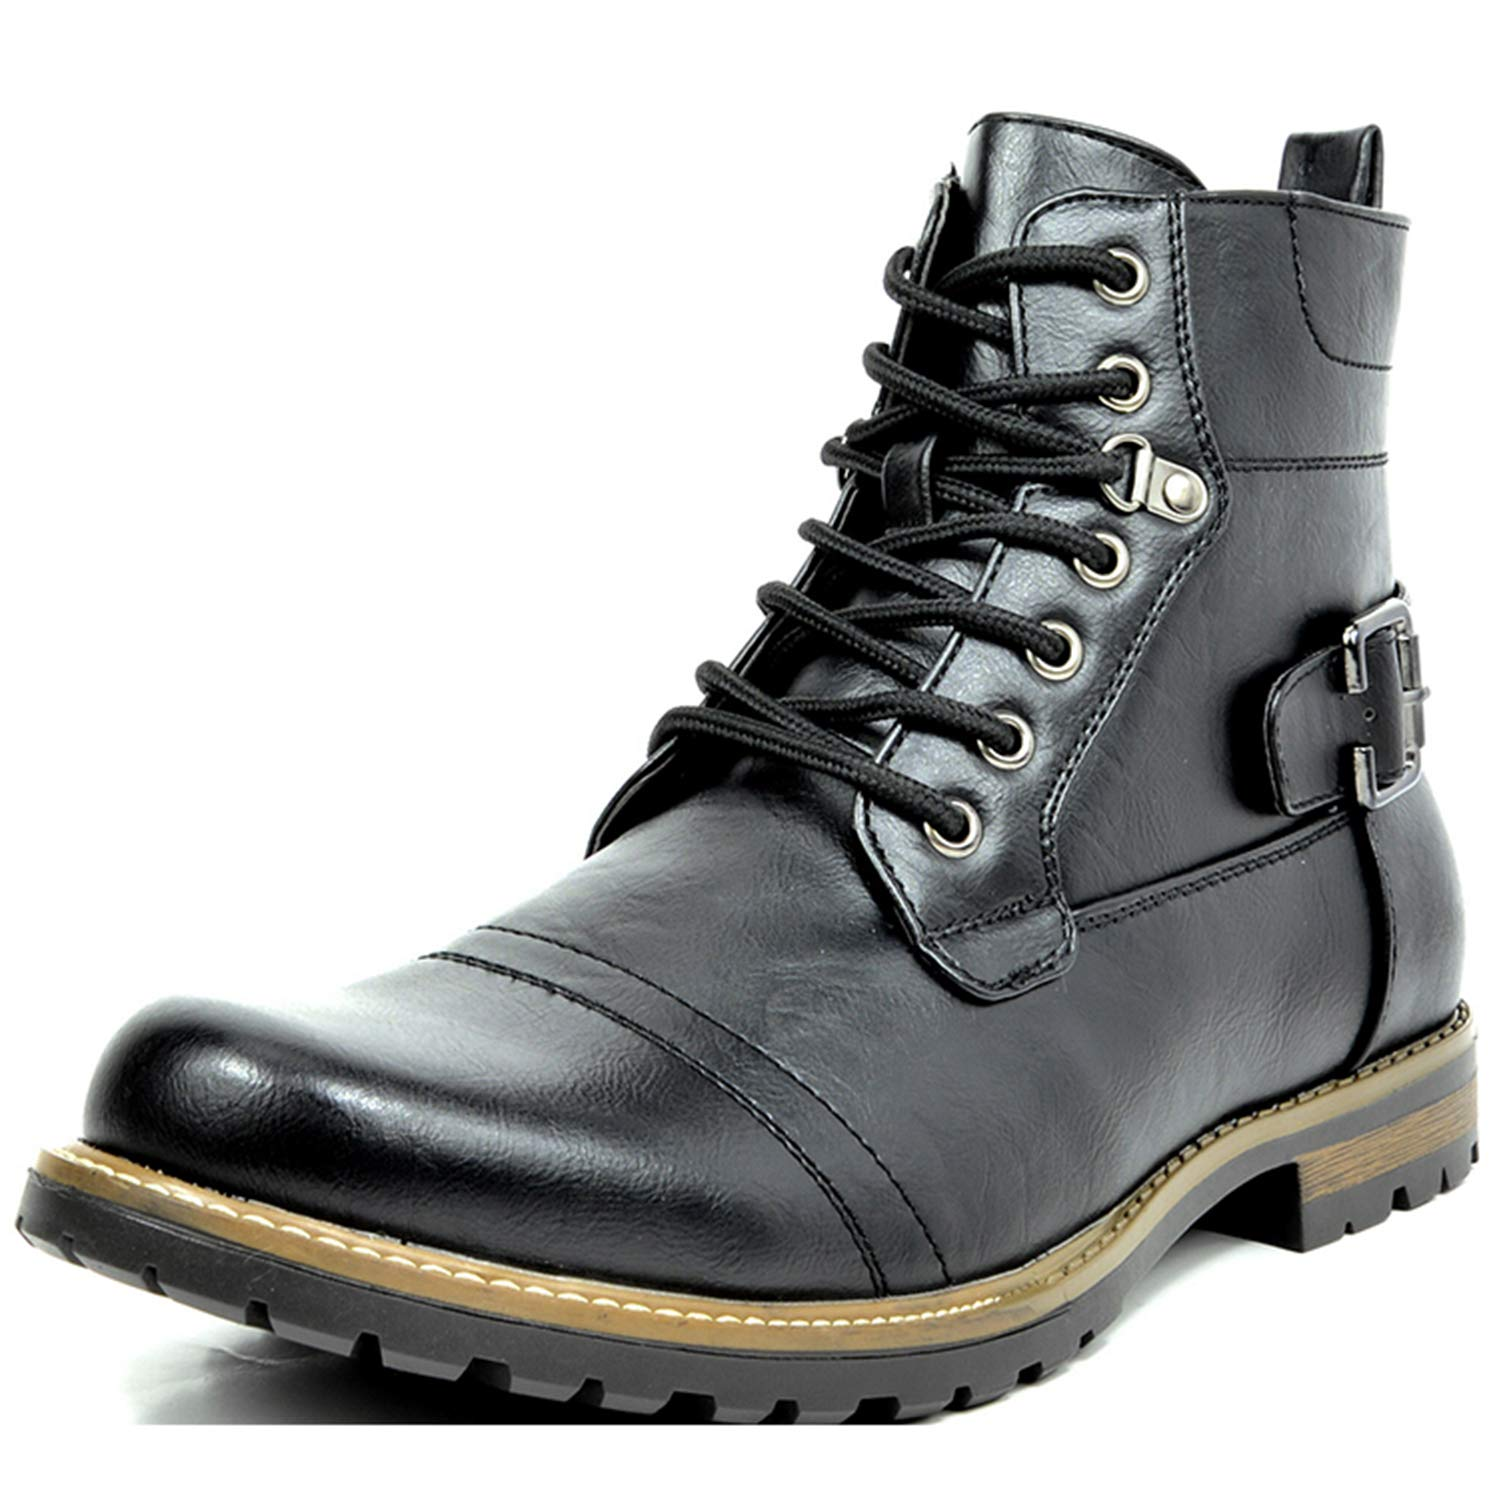 Men's Steampunk Clothing, Costumes, Fashion Bruno Marc Mens Military Motorcycle Combat Boots $39.99 AT vintagedancer.com